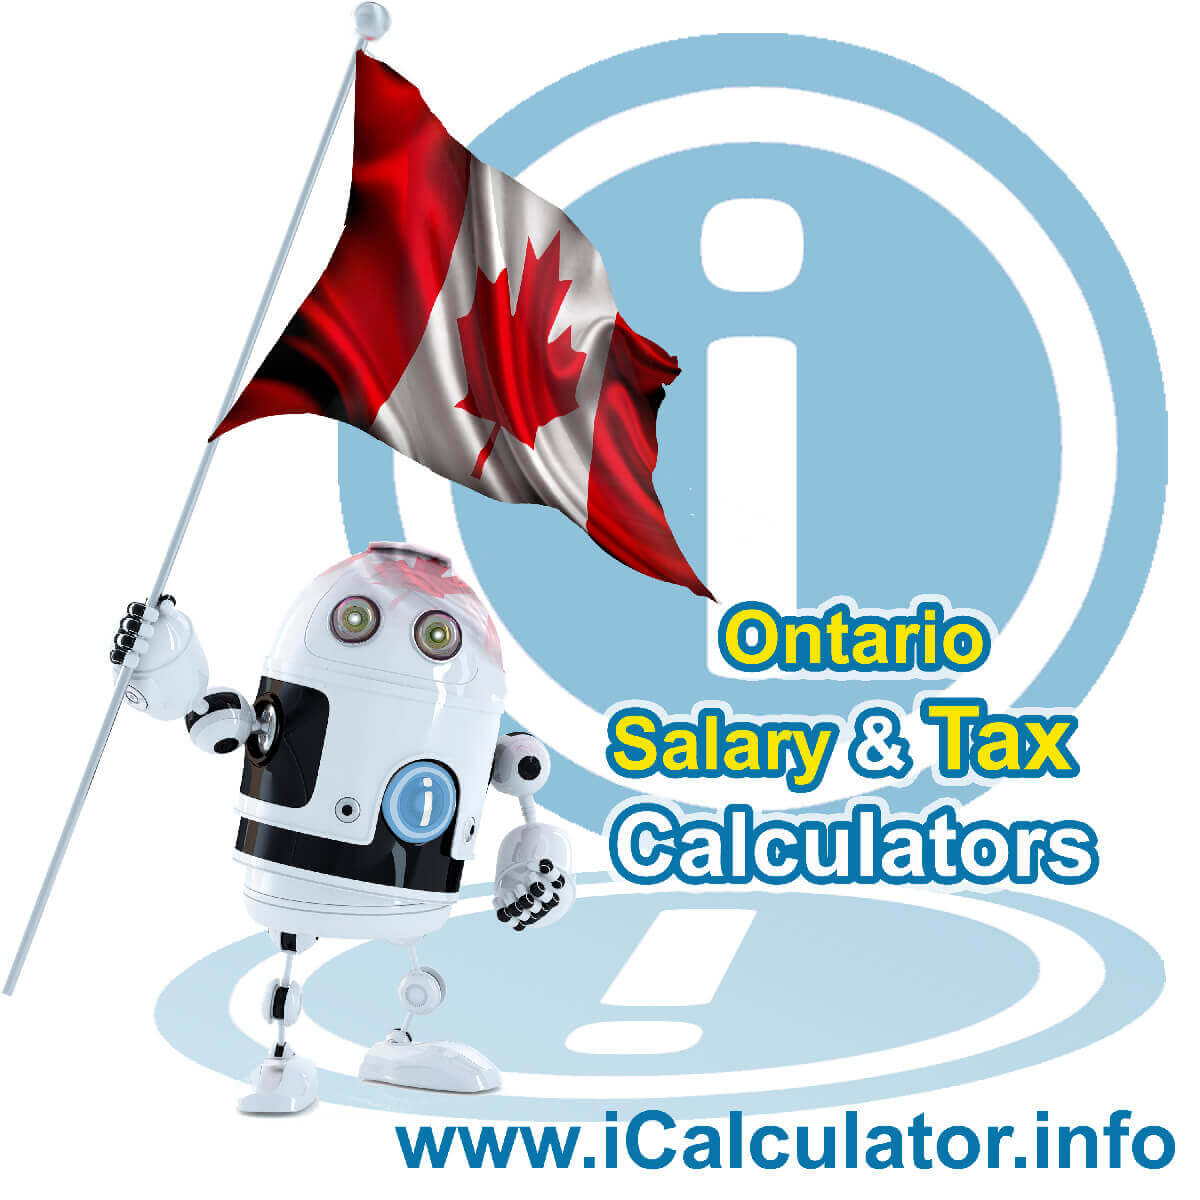 Ontario 2020 Salary Comparison Calculator. This image shows the Ontario flag and information relating to the tax formula used in the Ontario 2020 Salary Comparison Calculator